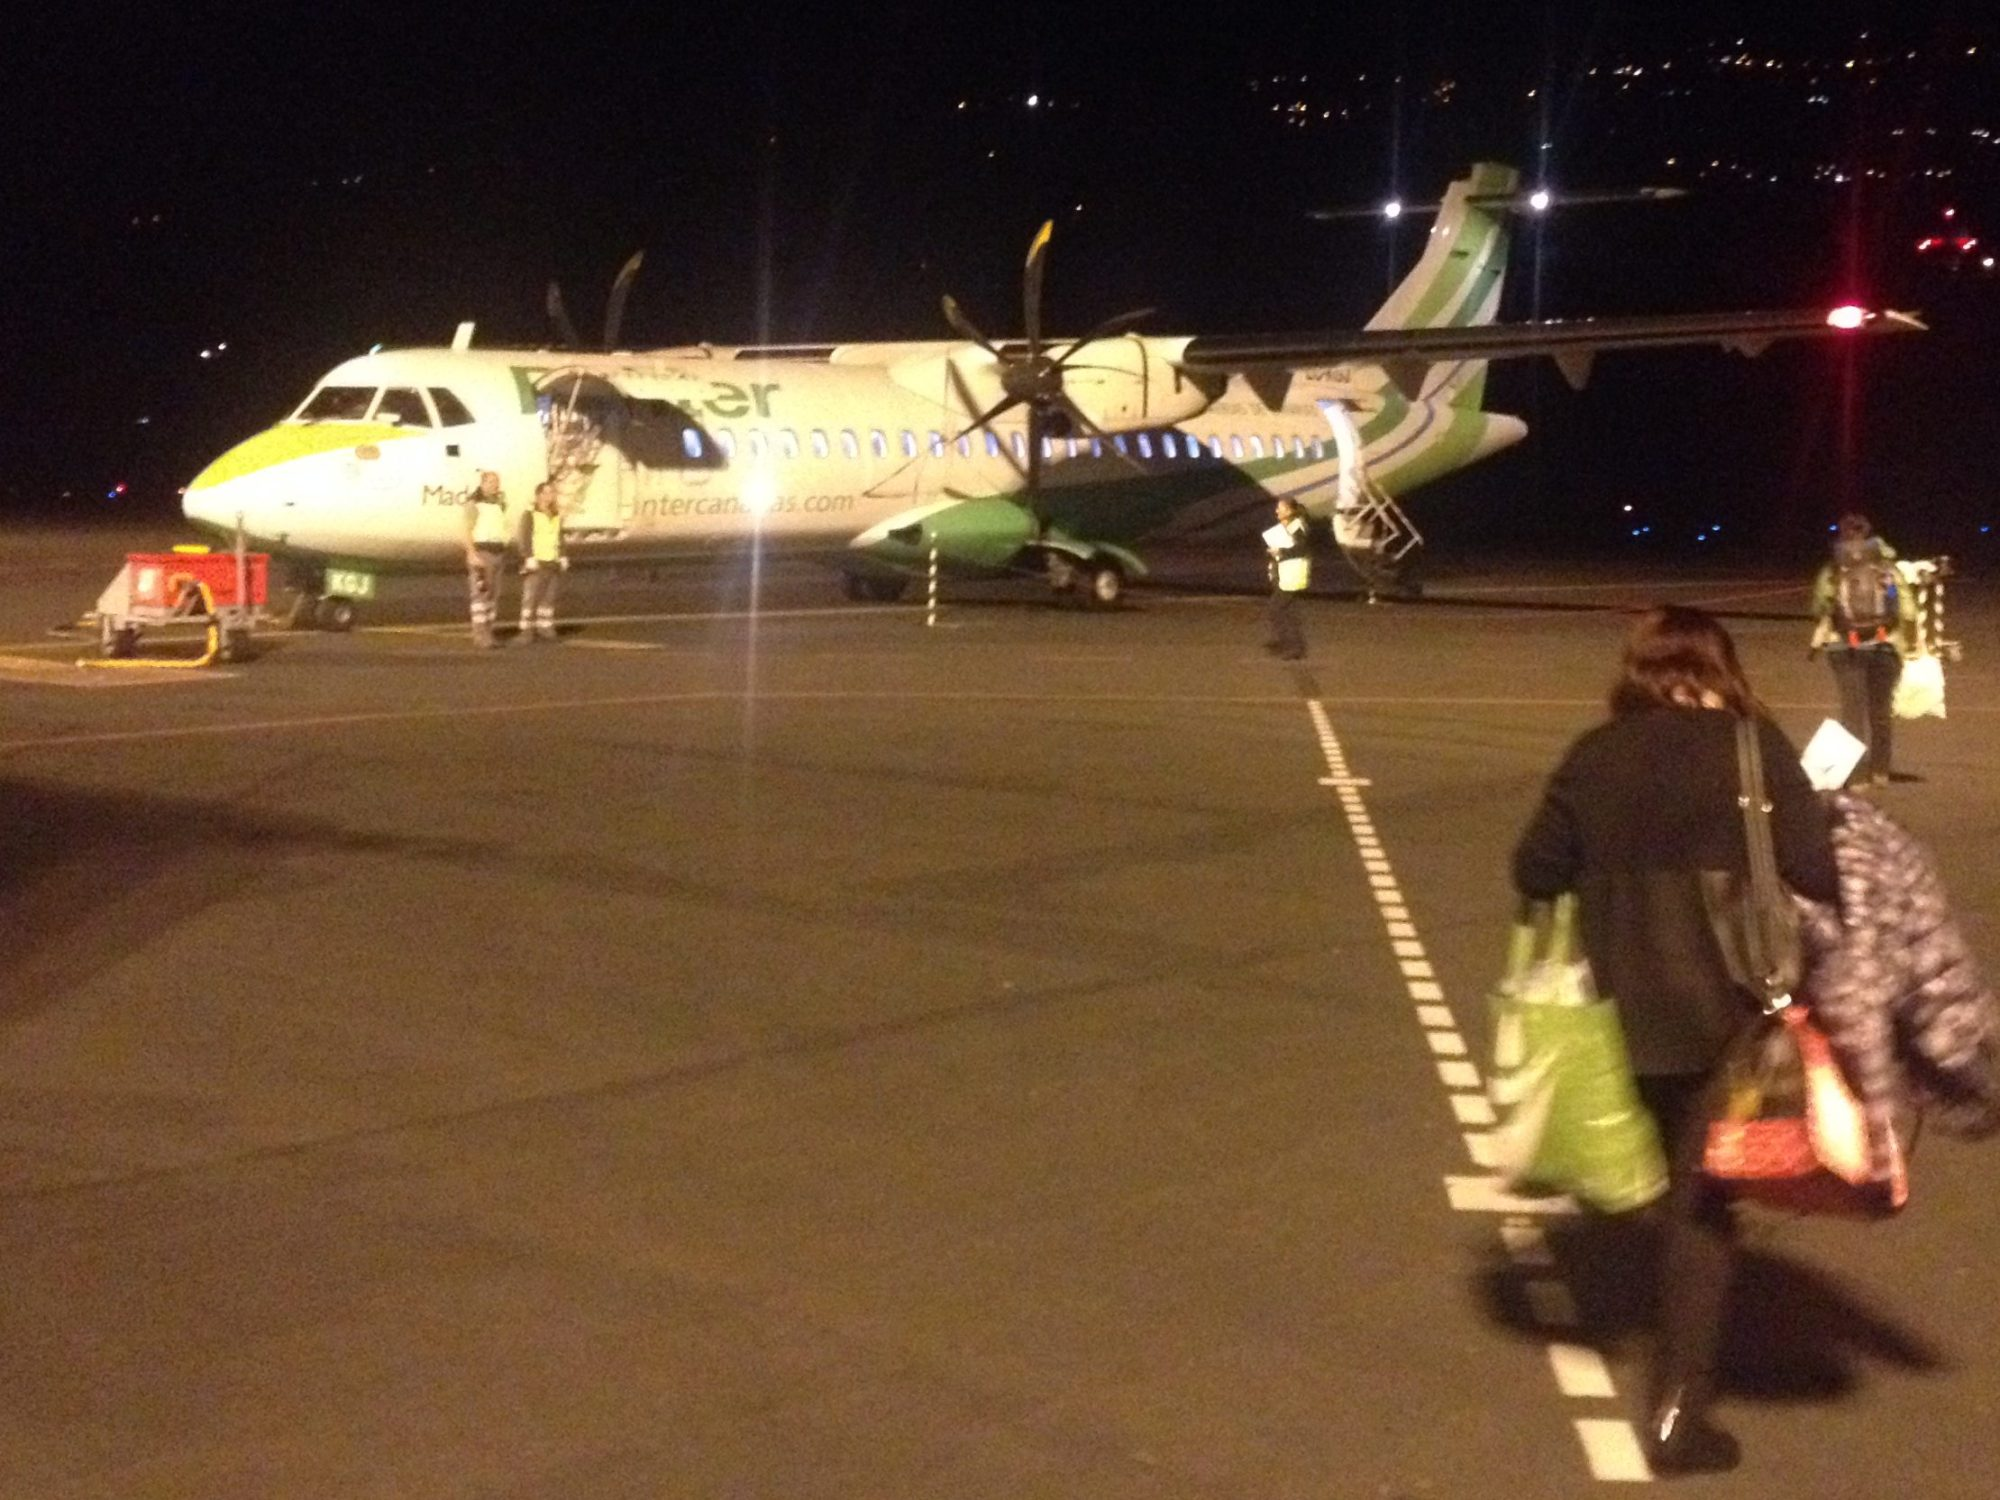 Binter Canarias ATR 72 waiting on the Tarmac